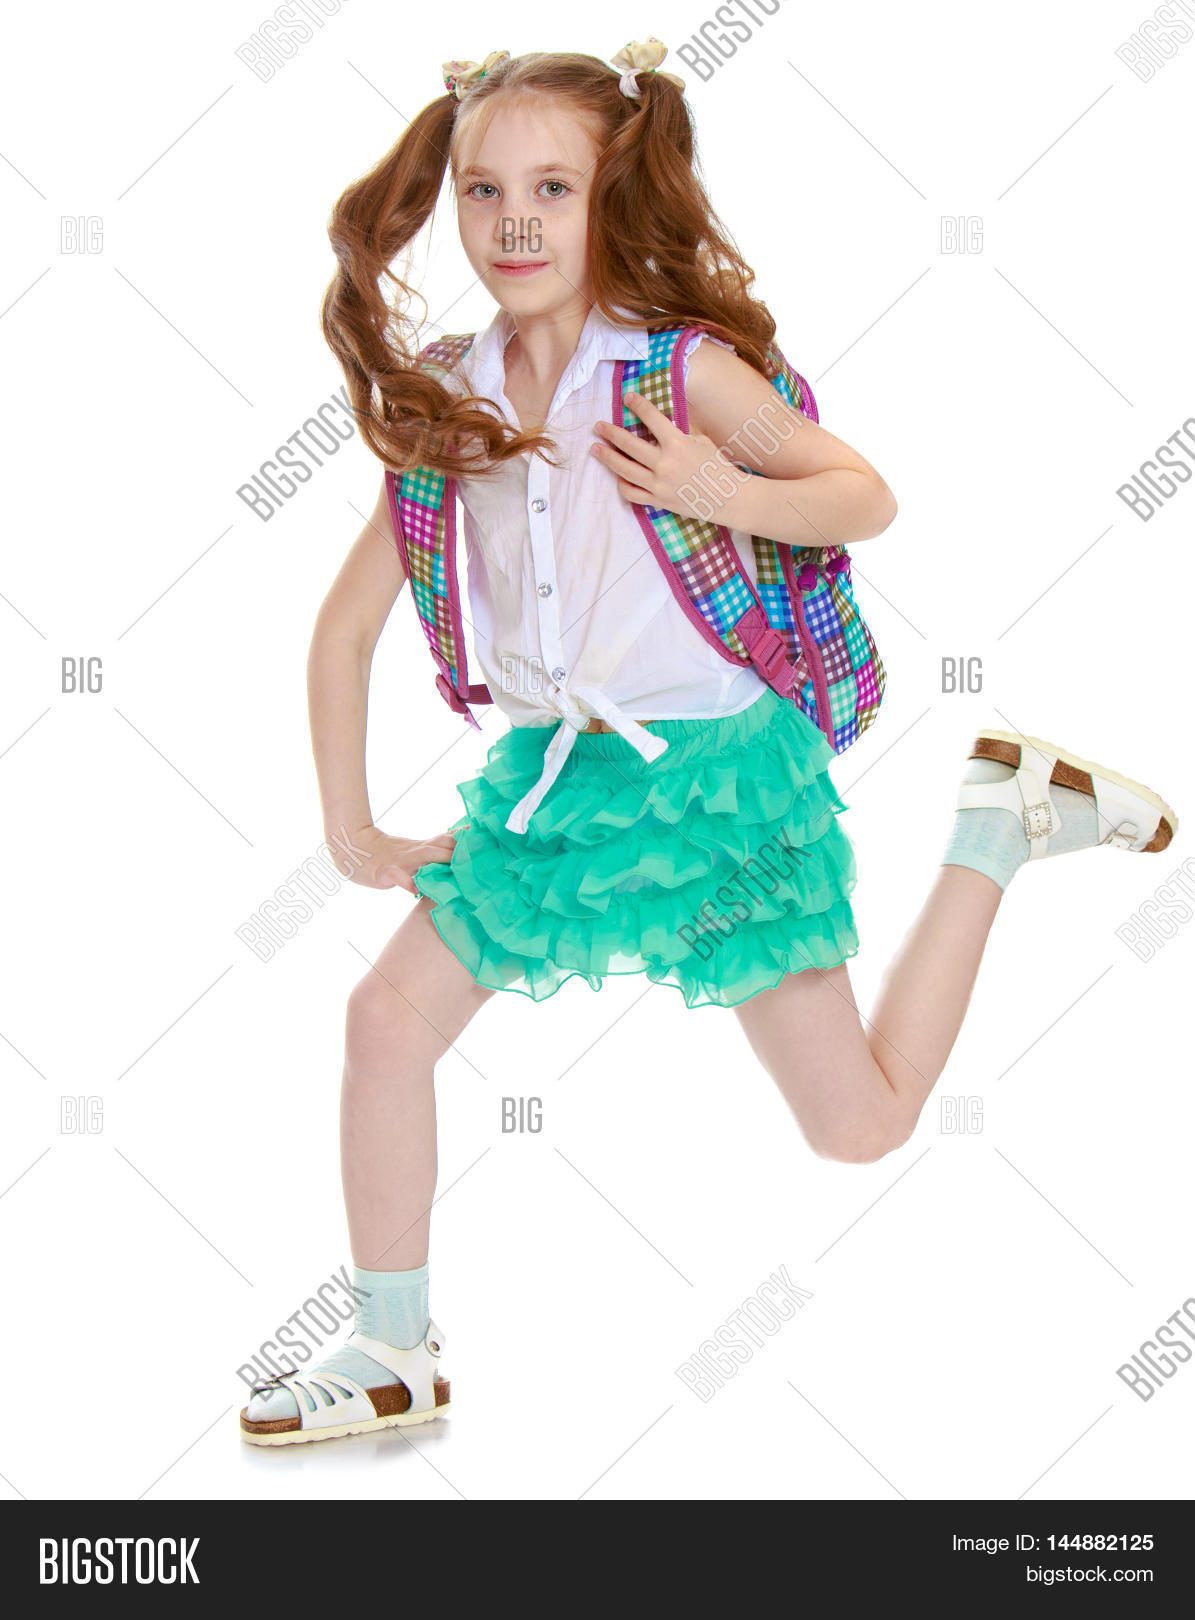 7304c3d01826 Cute little girl in a short green skirt and white shirt with a backpack on  their